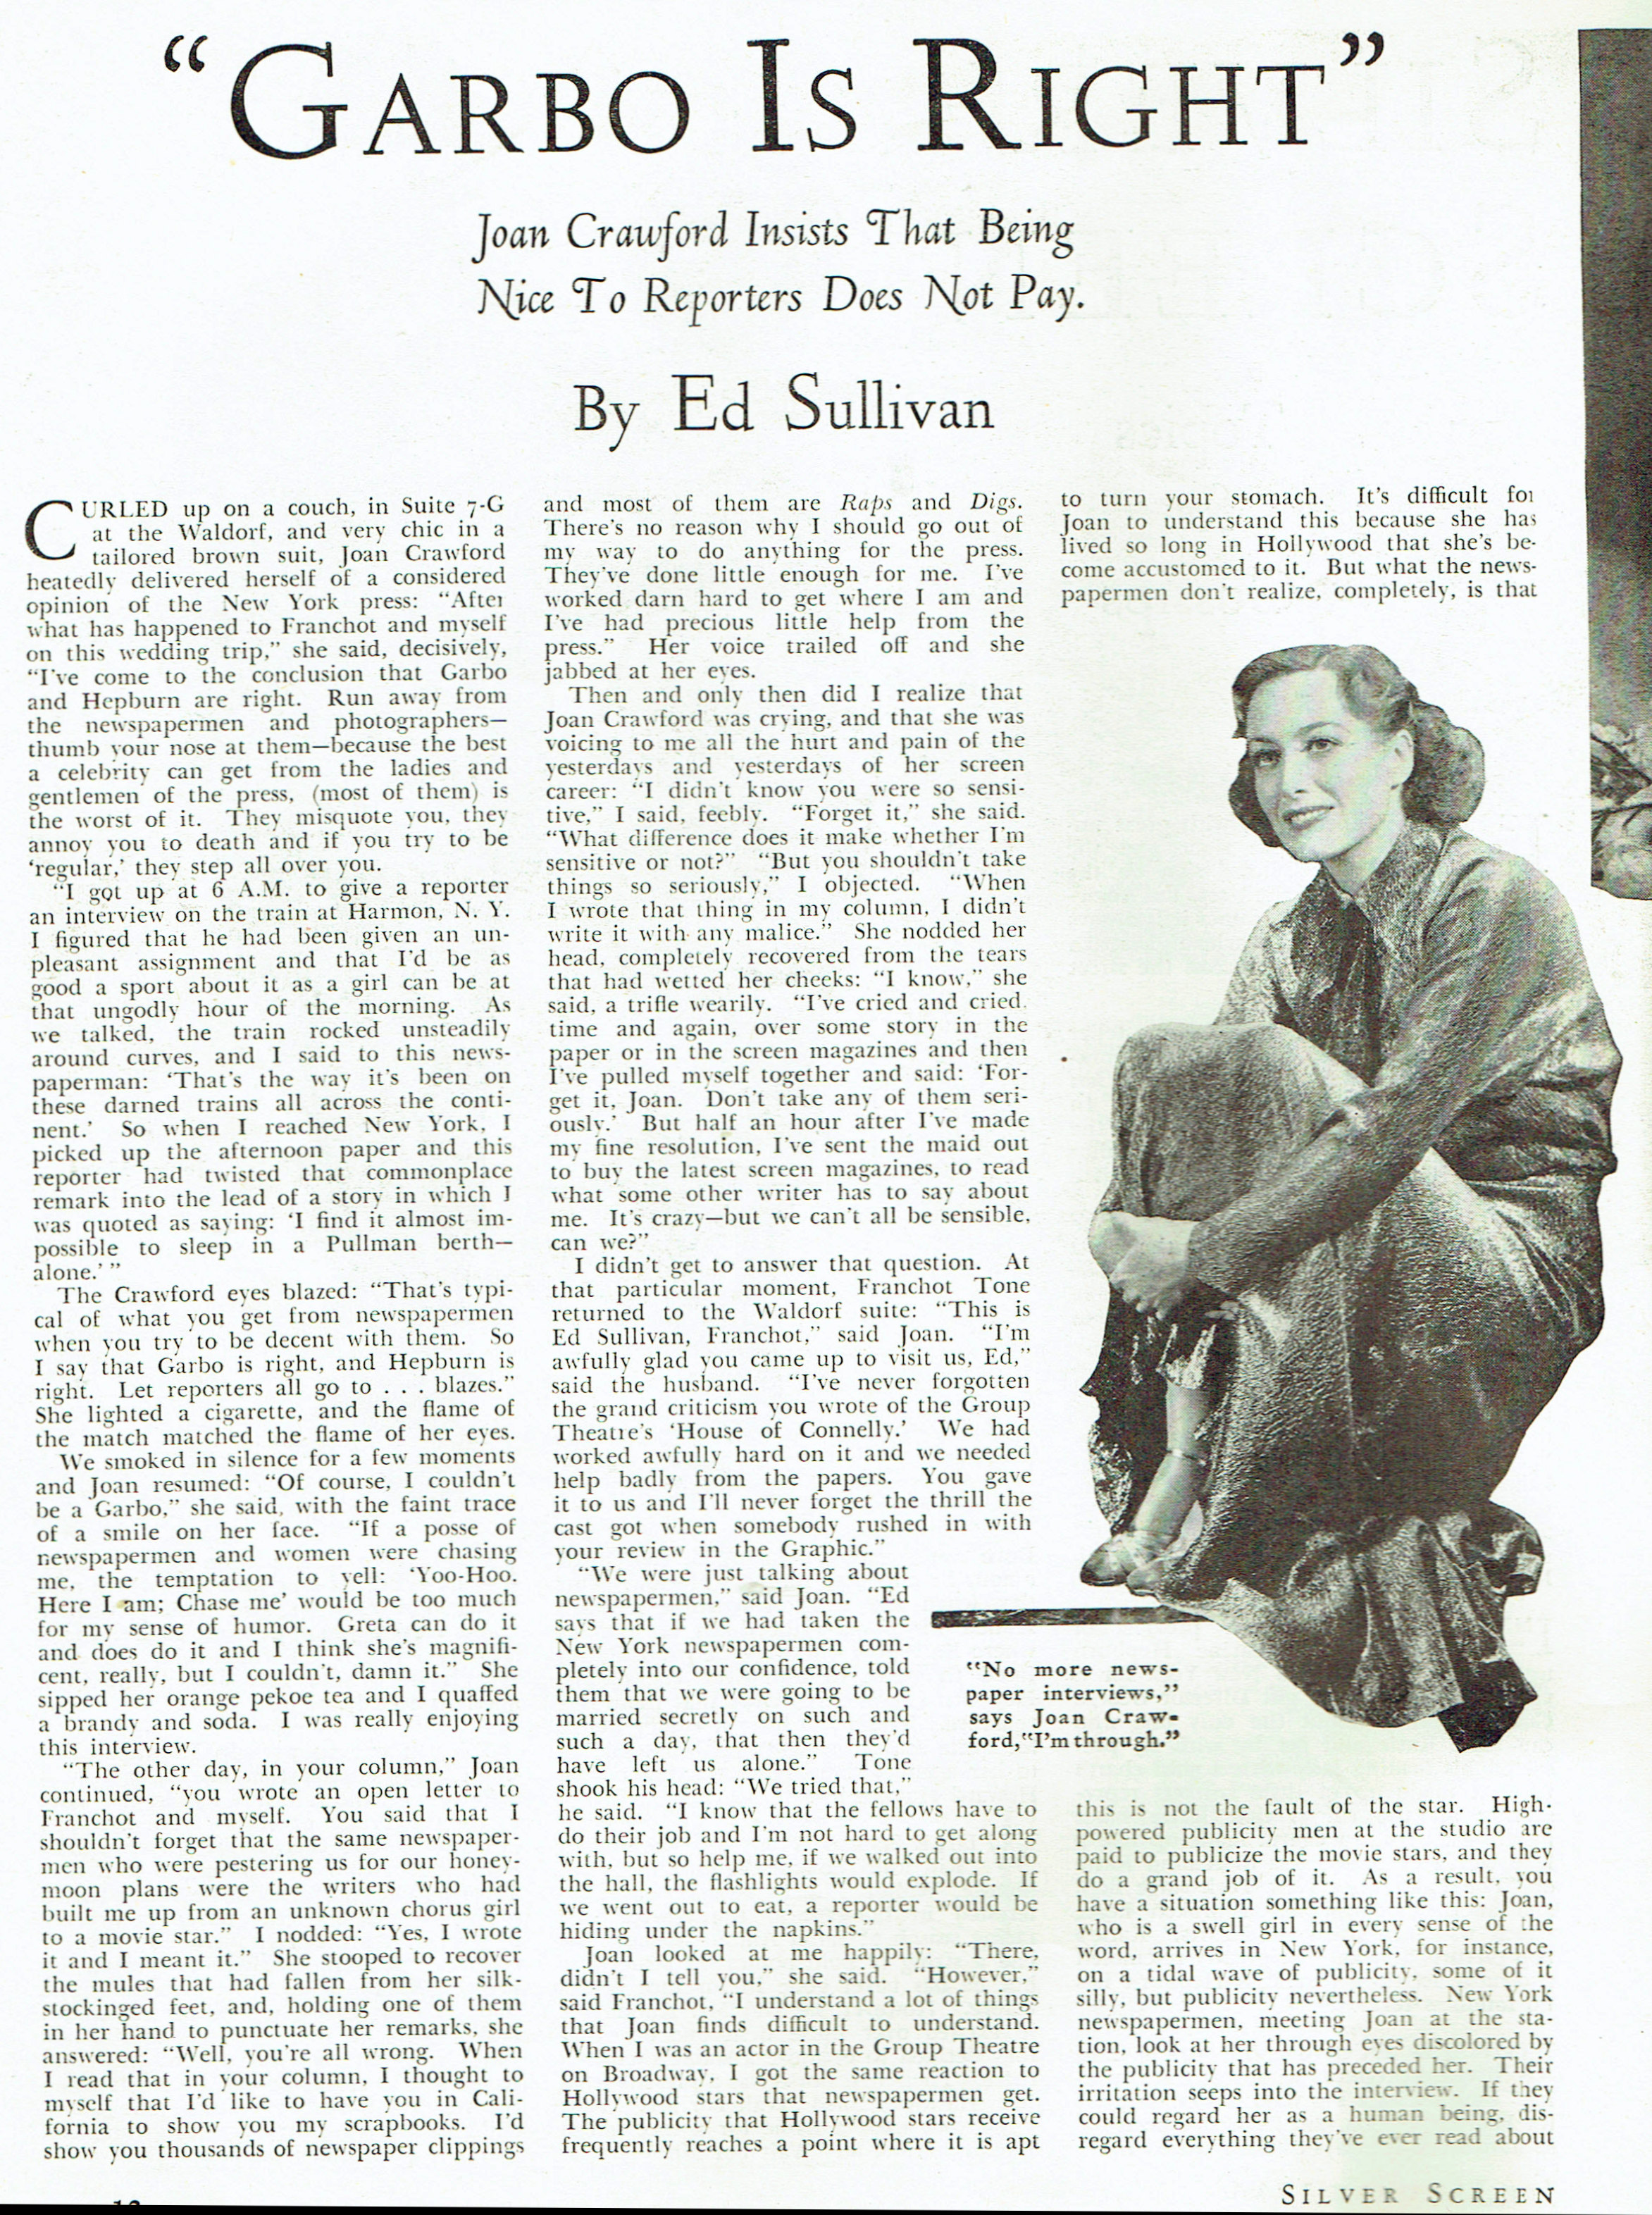 silver screen january 1936a